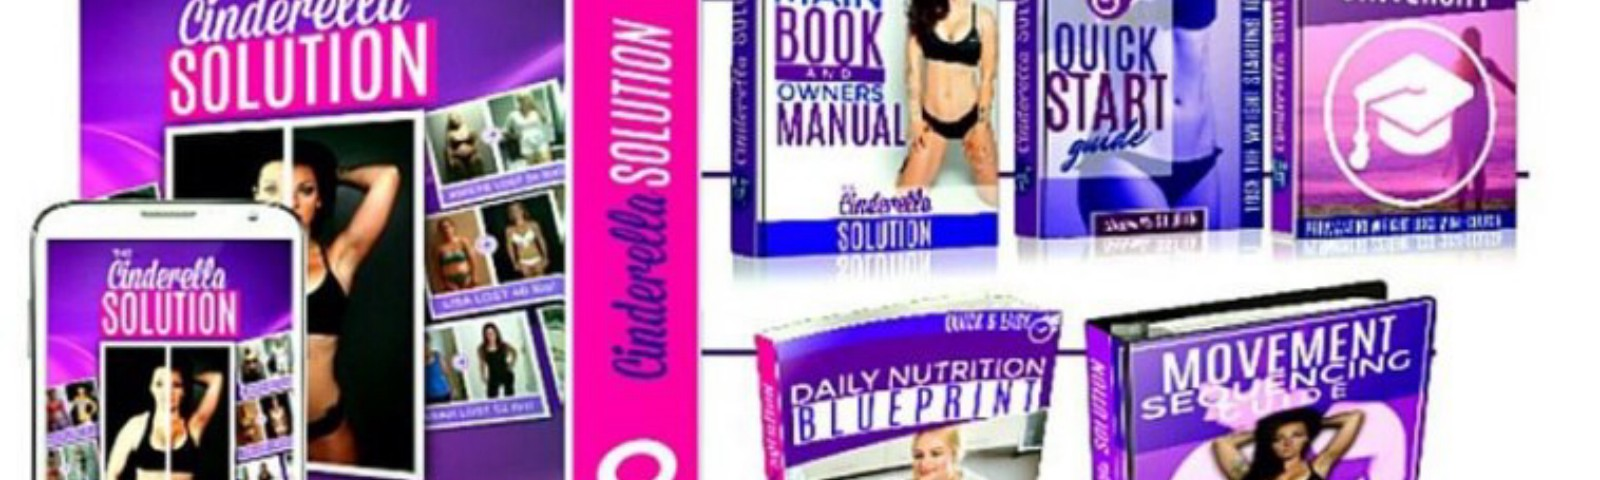 Images Price Diet Cinderella Solution